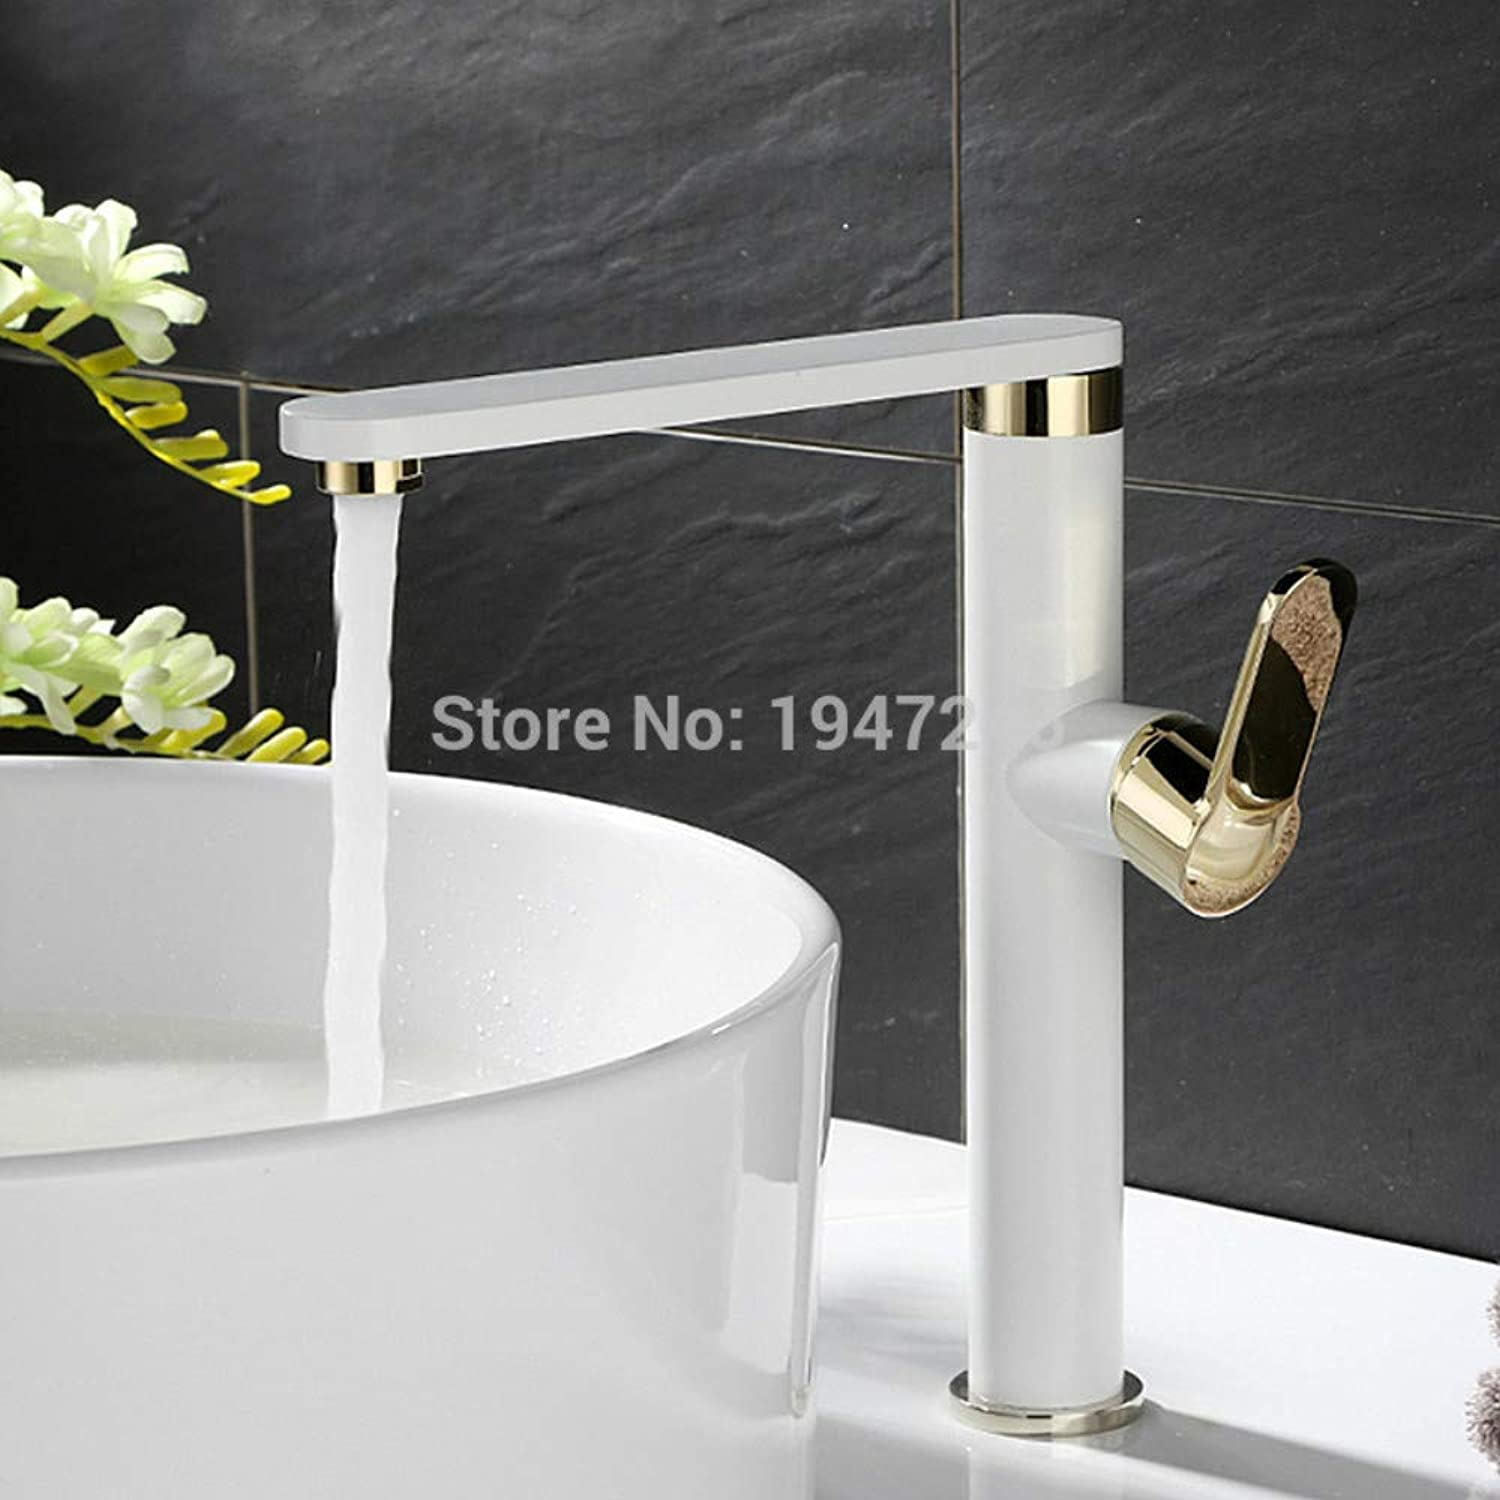 Bathroom Sink Tap High Quality Swivel Contemporary Solid Brass Single Handle High Body Bathroom Vessel Sink Faucet